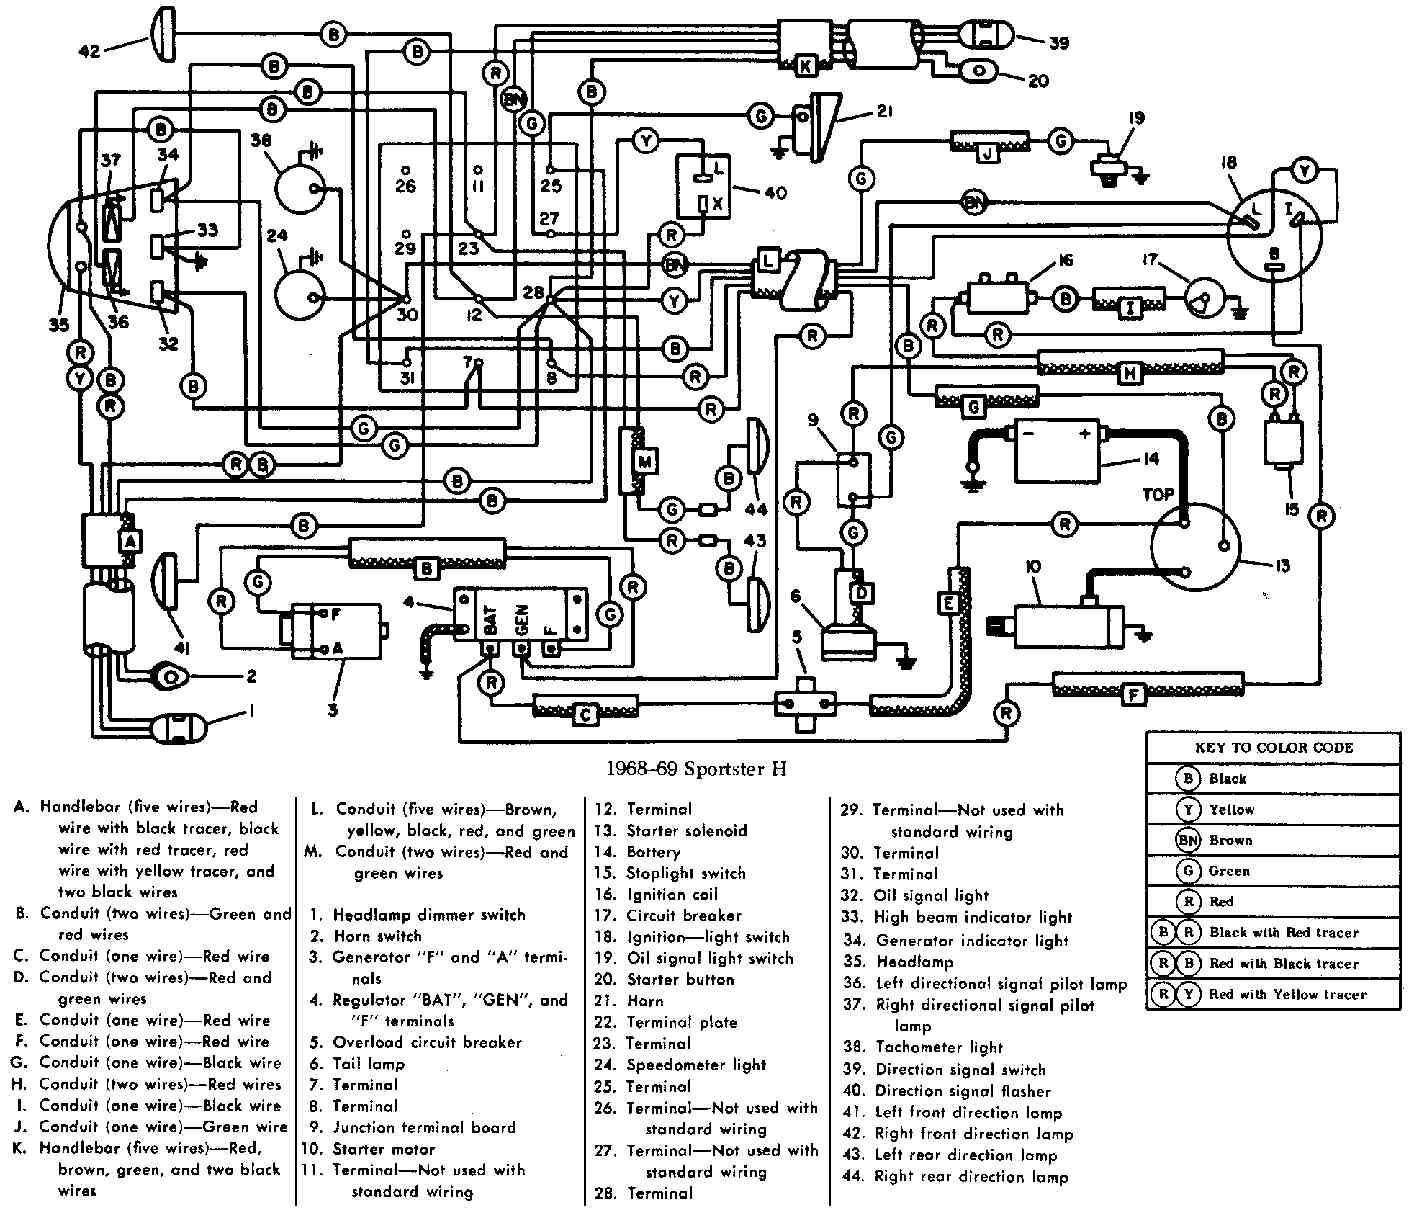 Pin by Robert Washburn on EngineScheme | Harley davidson sportster, Electrical  wiring diagram, Motorcycle wiring Pinterest